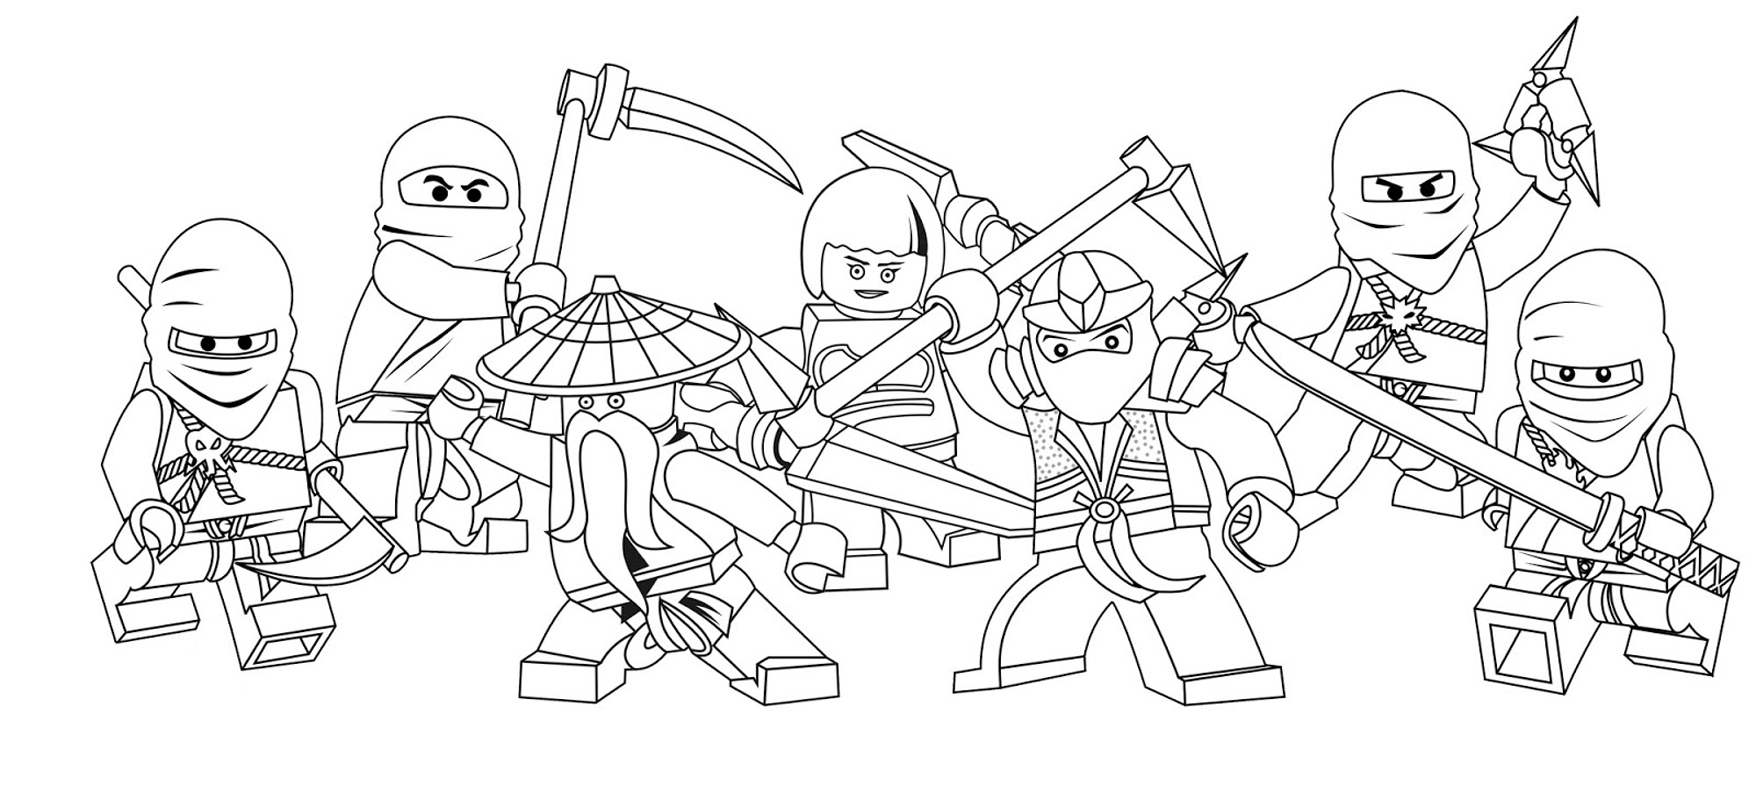 kids coloring pages lego-ninjago,printable,coloring pages